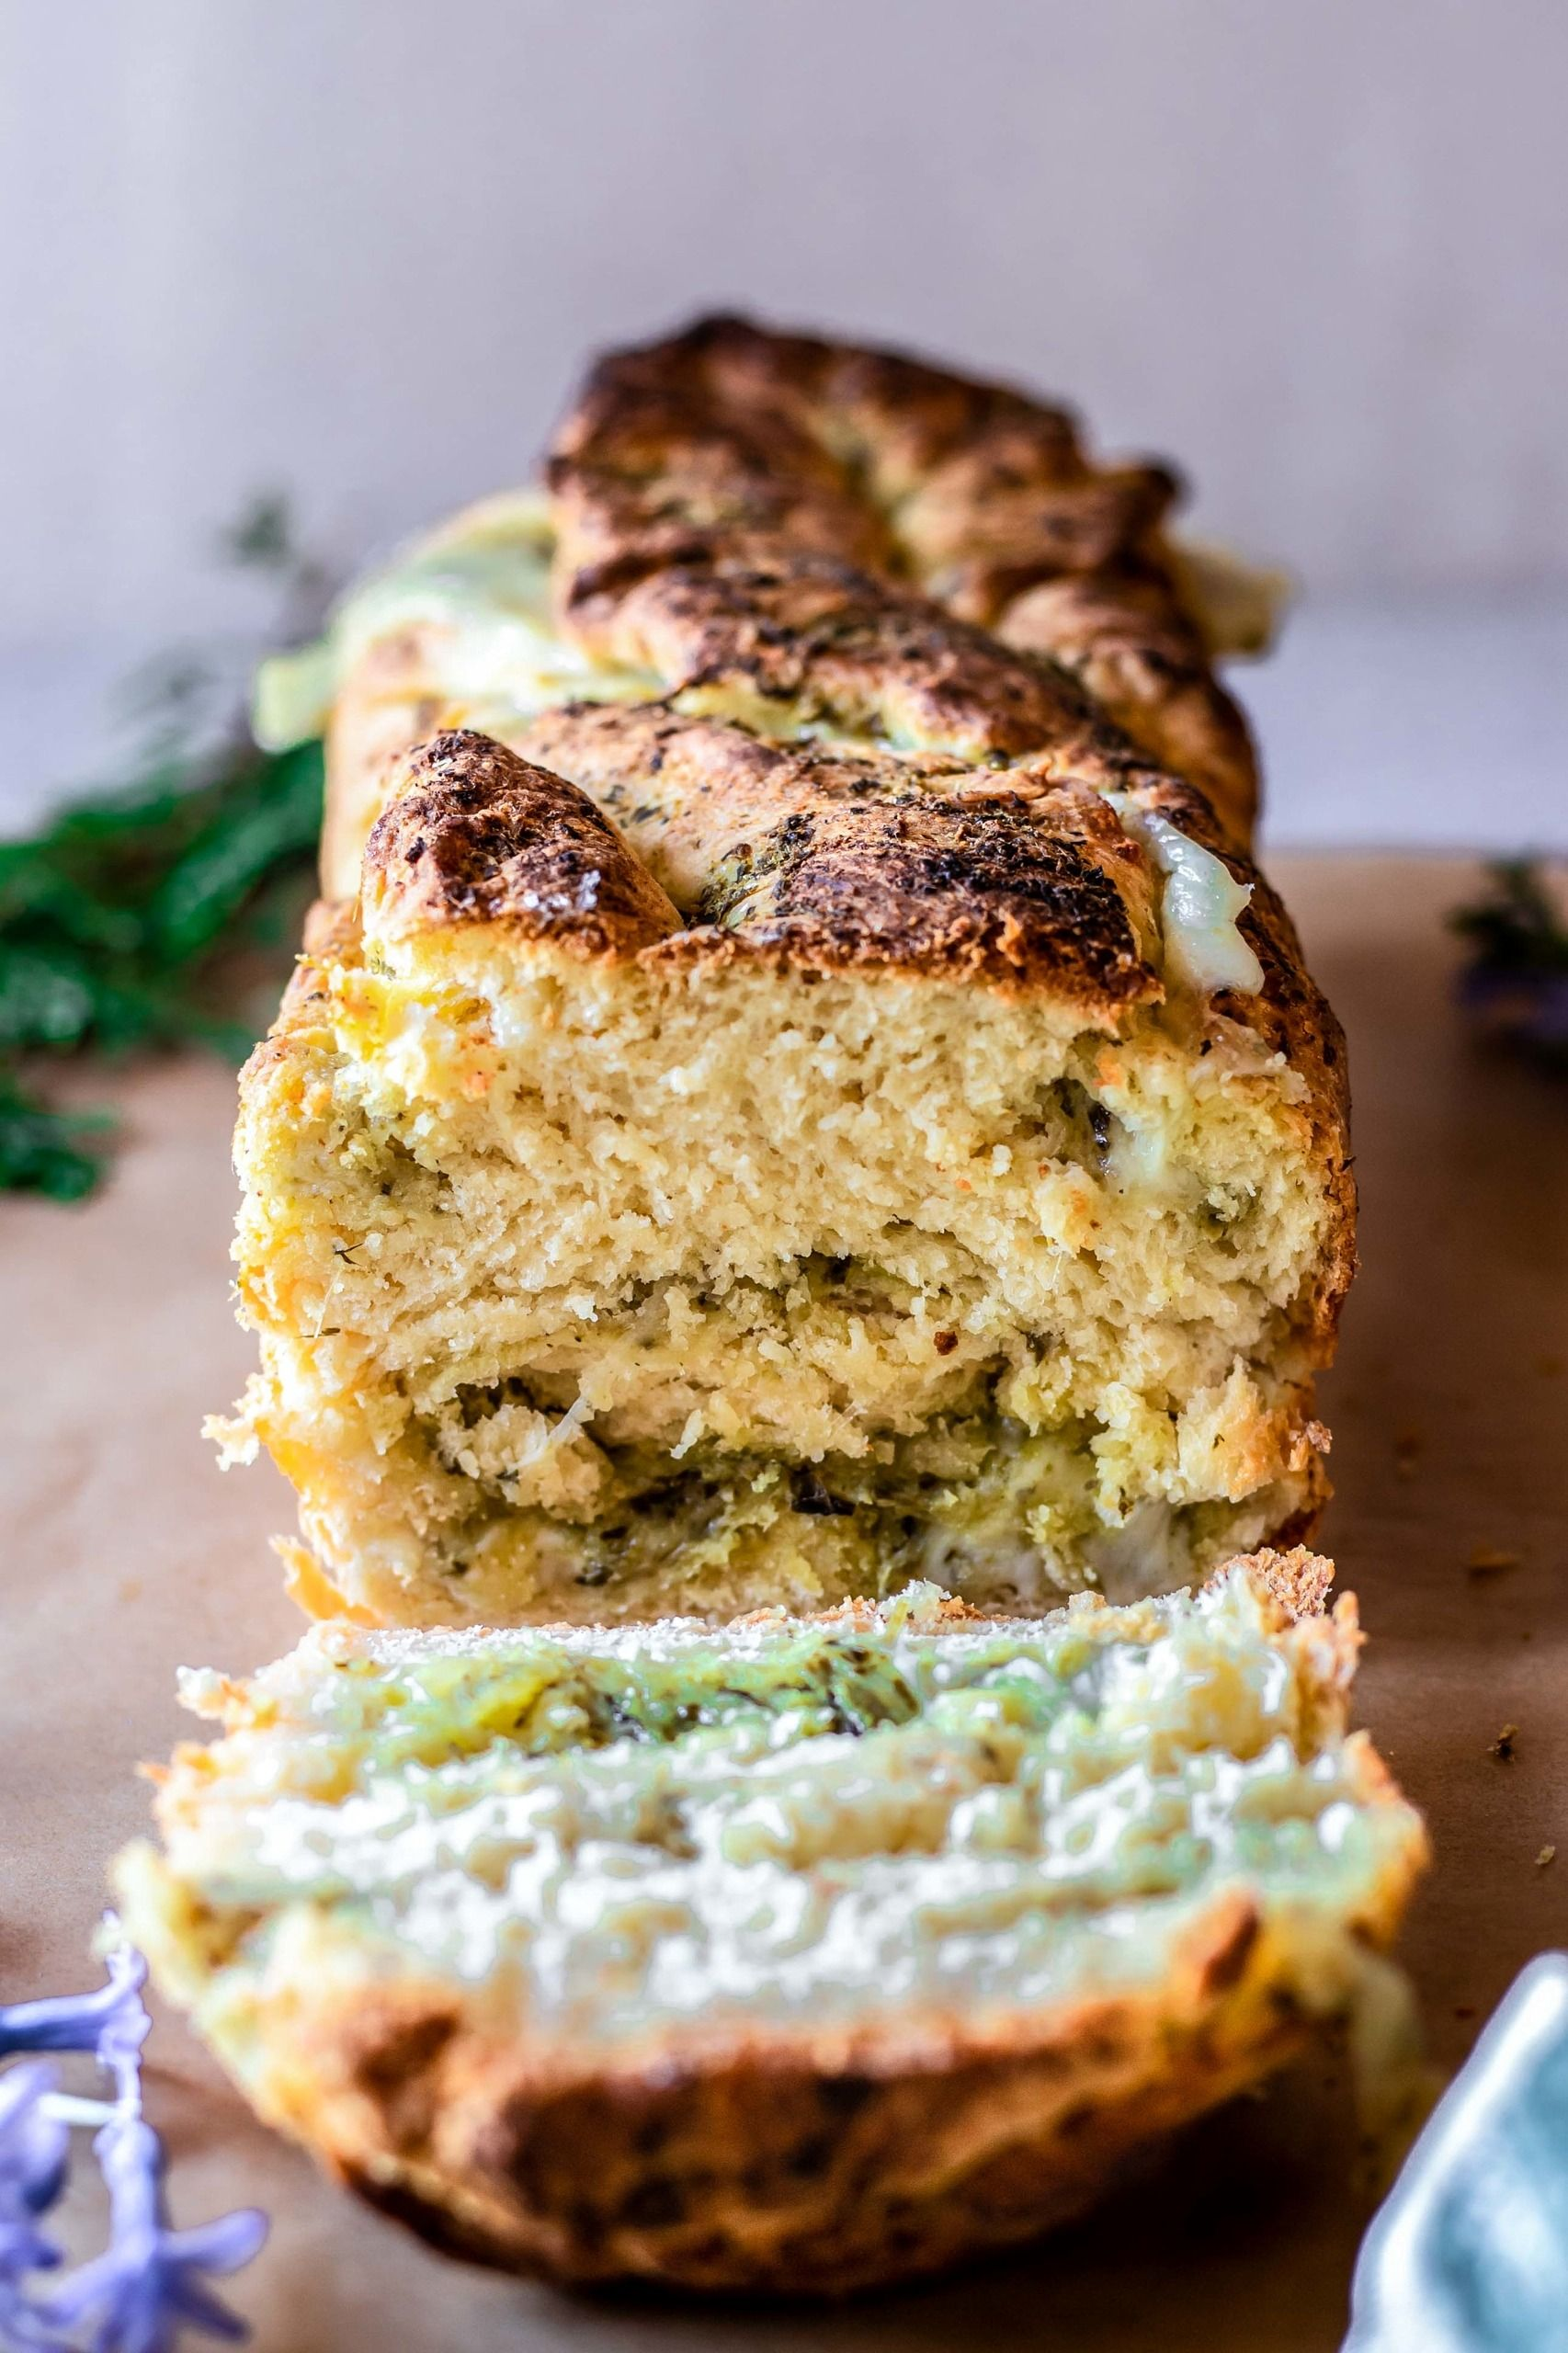 Gluten Free Mozzarella And Pesto Stuffed Bread Low Fodmap Recipe In 2020 Real Food Recipes Fodmap Recipes Food